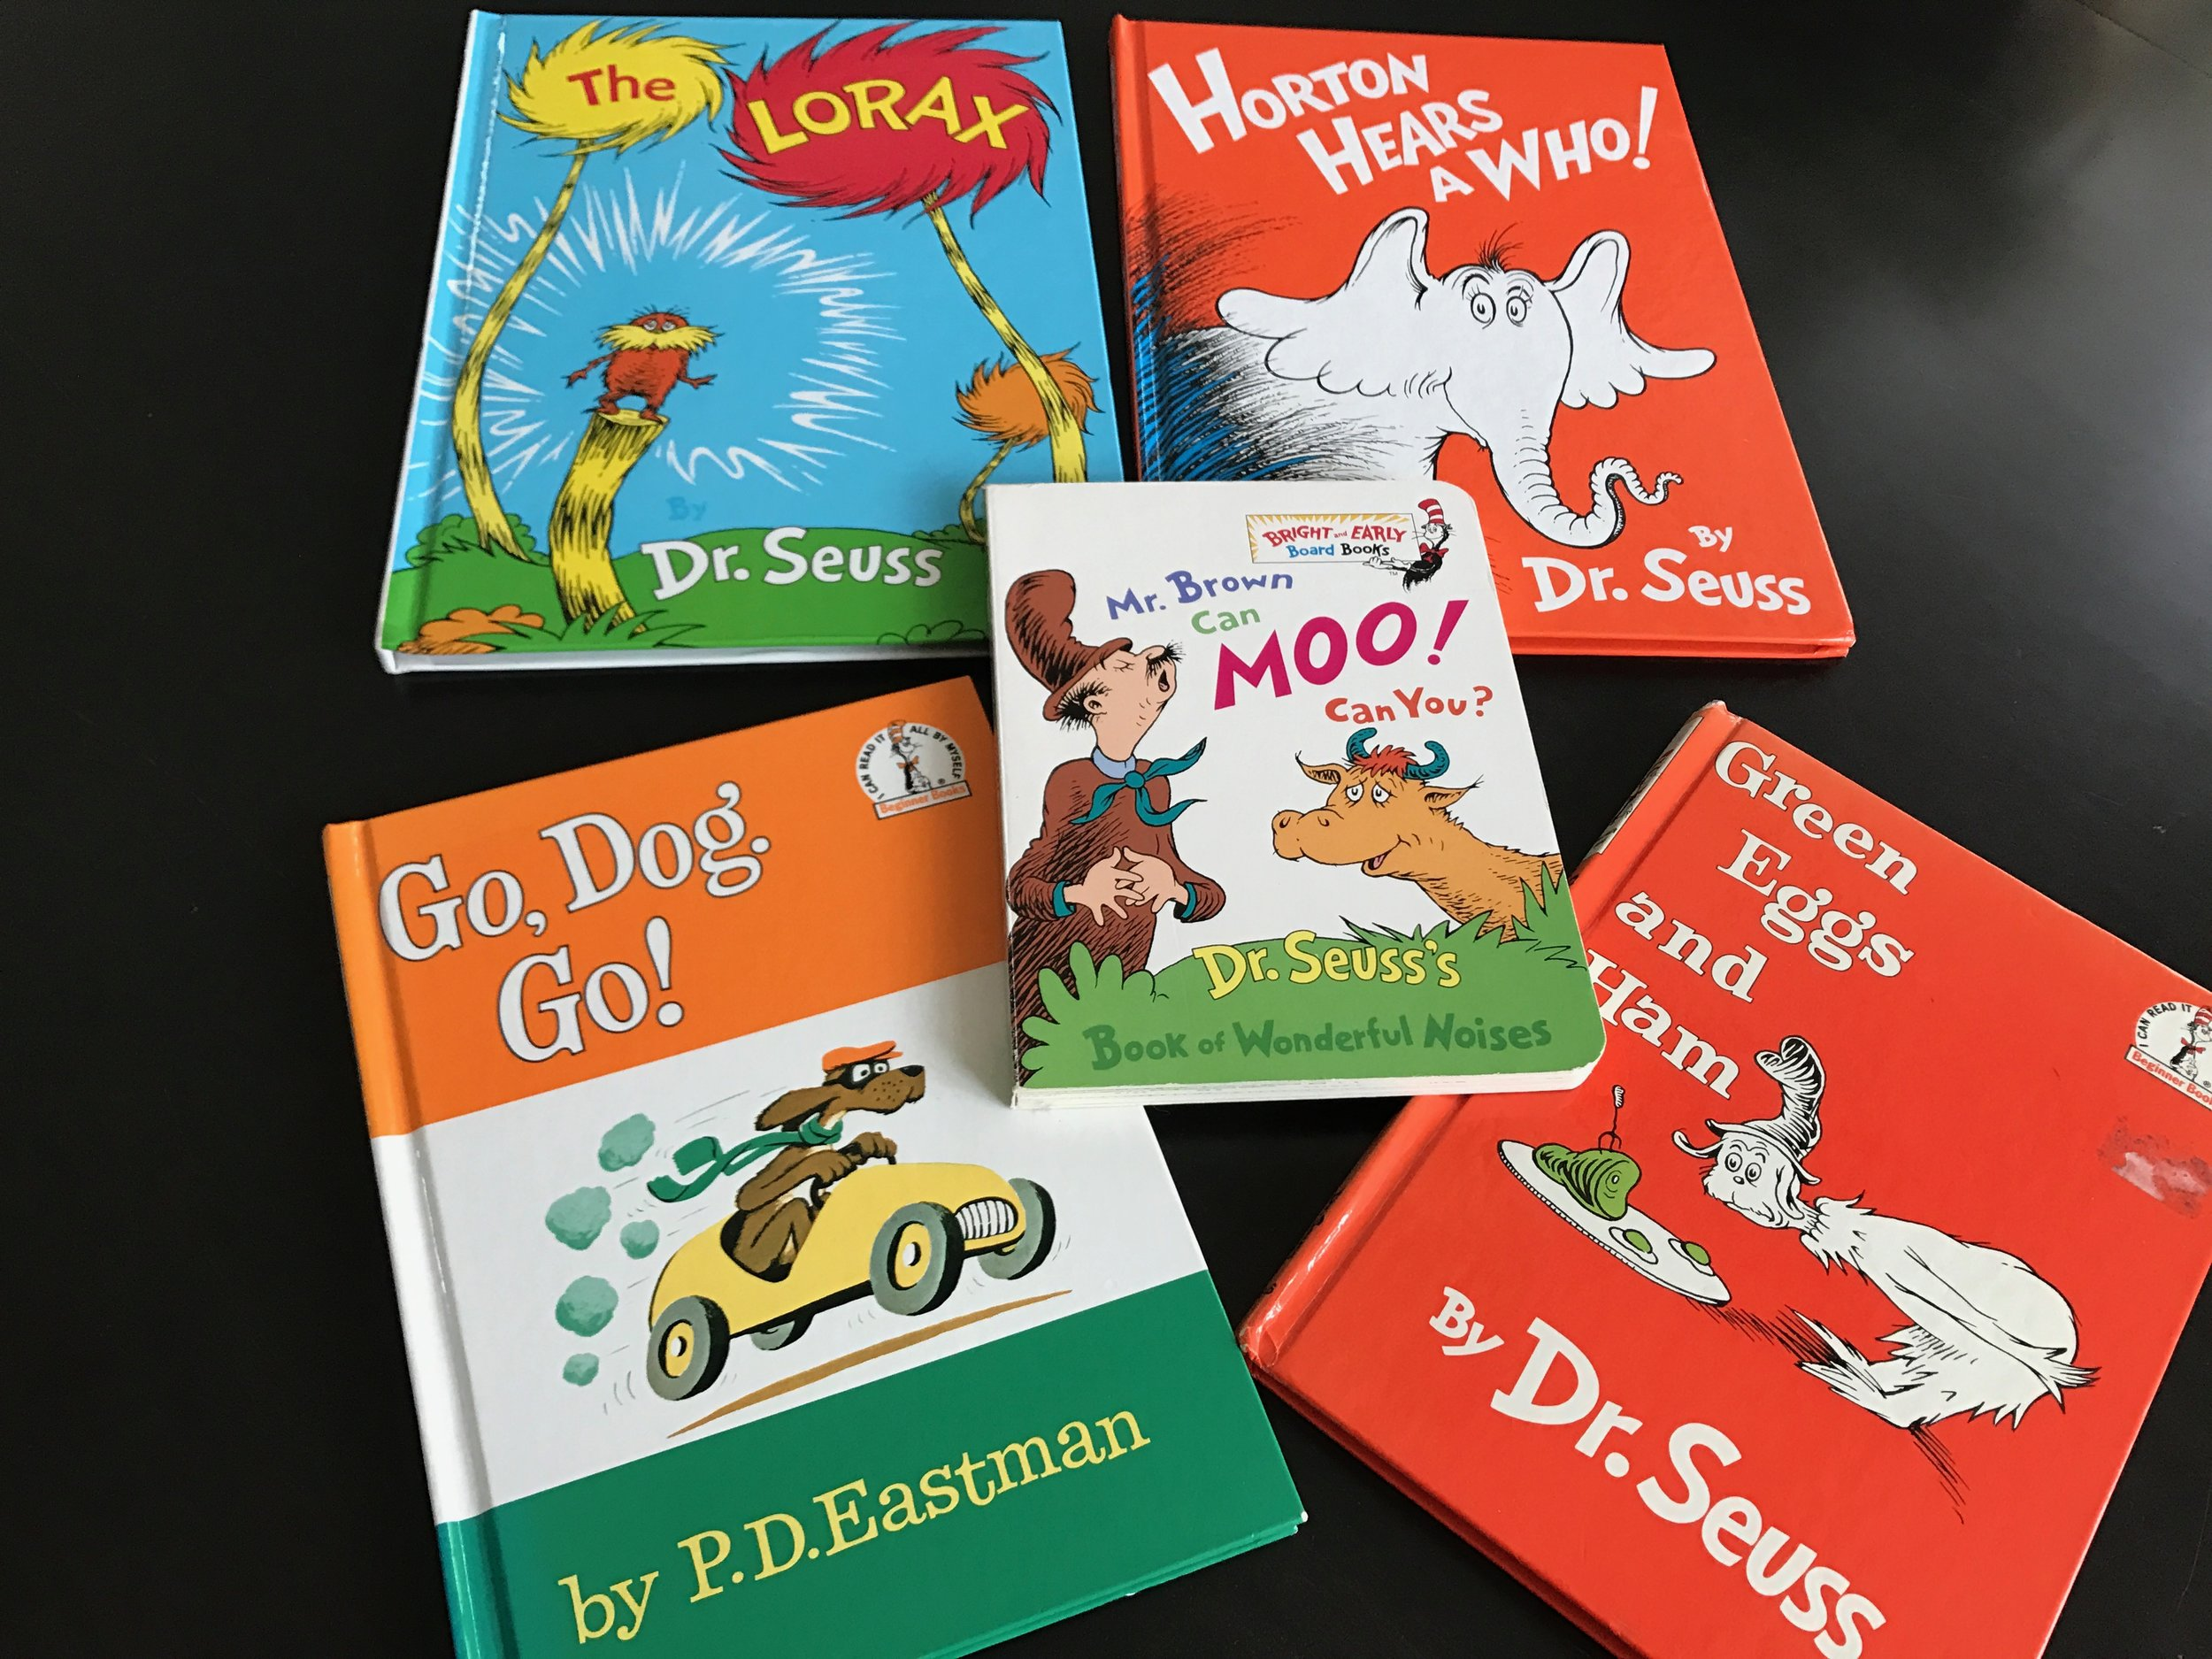 Here are the favorites in our home library. Also, click on the websites that I enjoyed learning About Dr. Seuss.  Wikipedia and  99 Dr. Seuss Quotes .